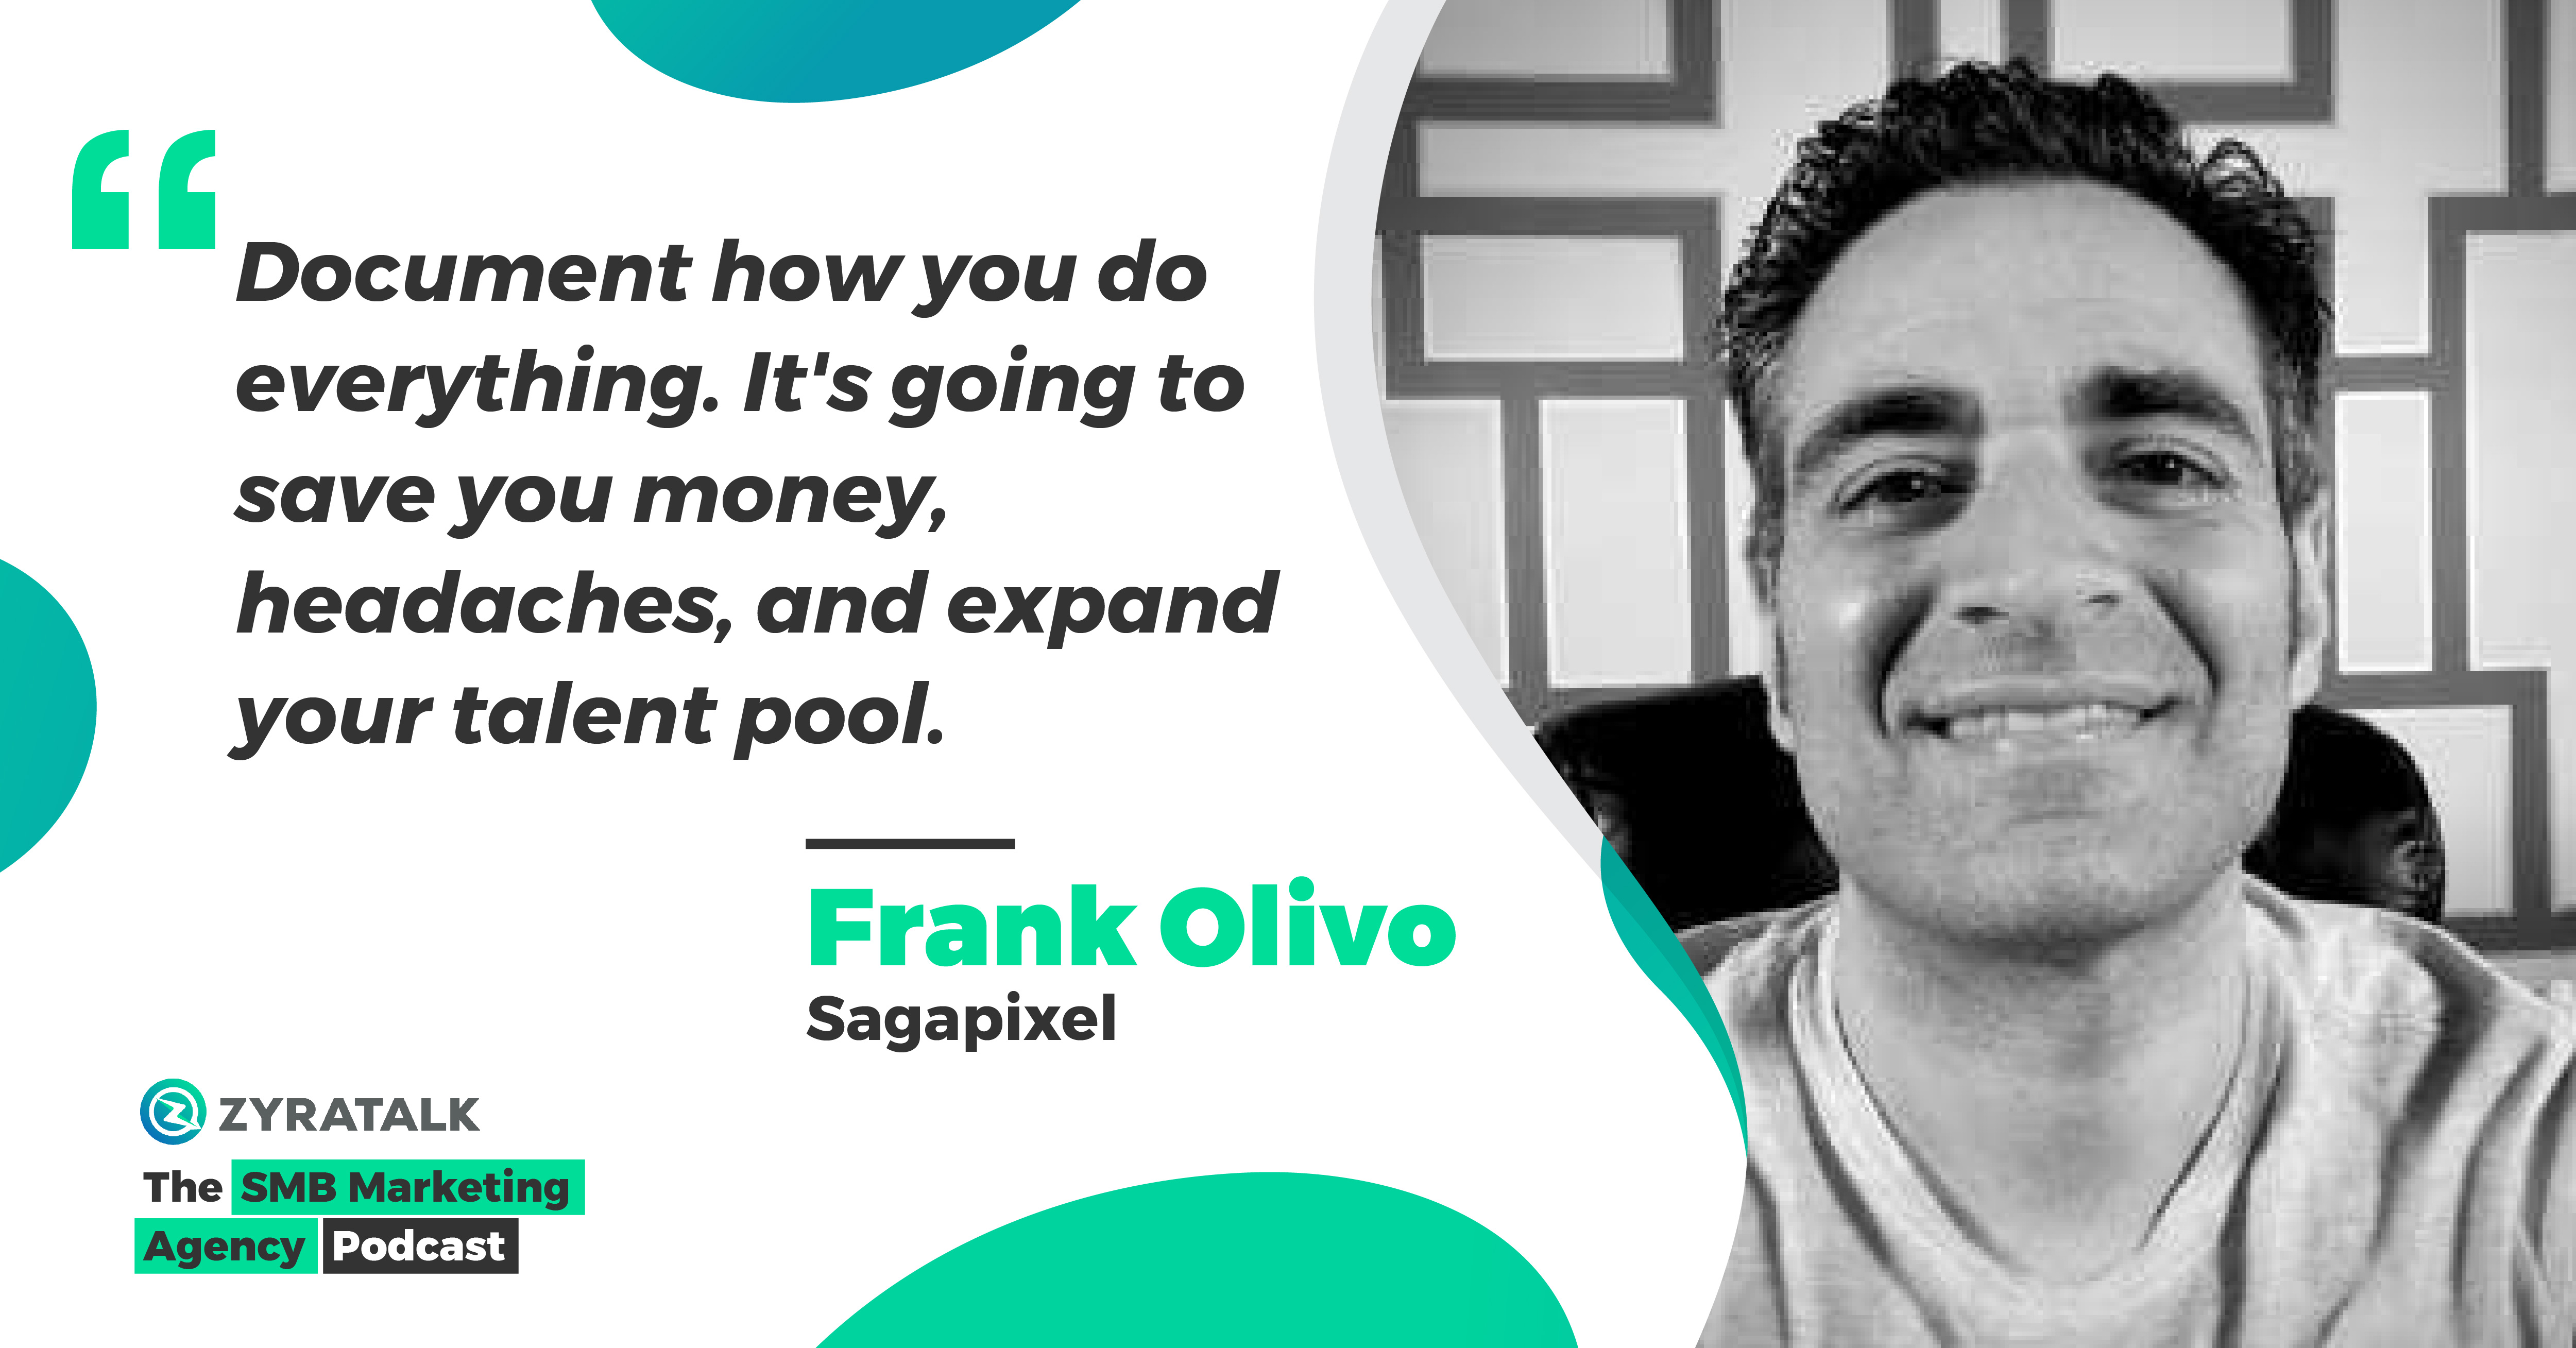 marketing podcast for small business frank olivo sagapixel